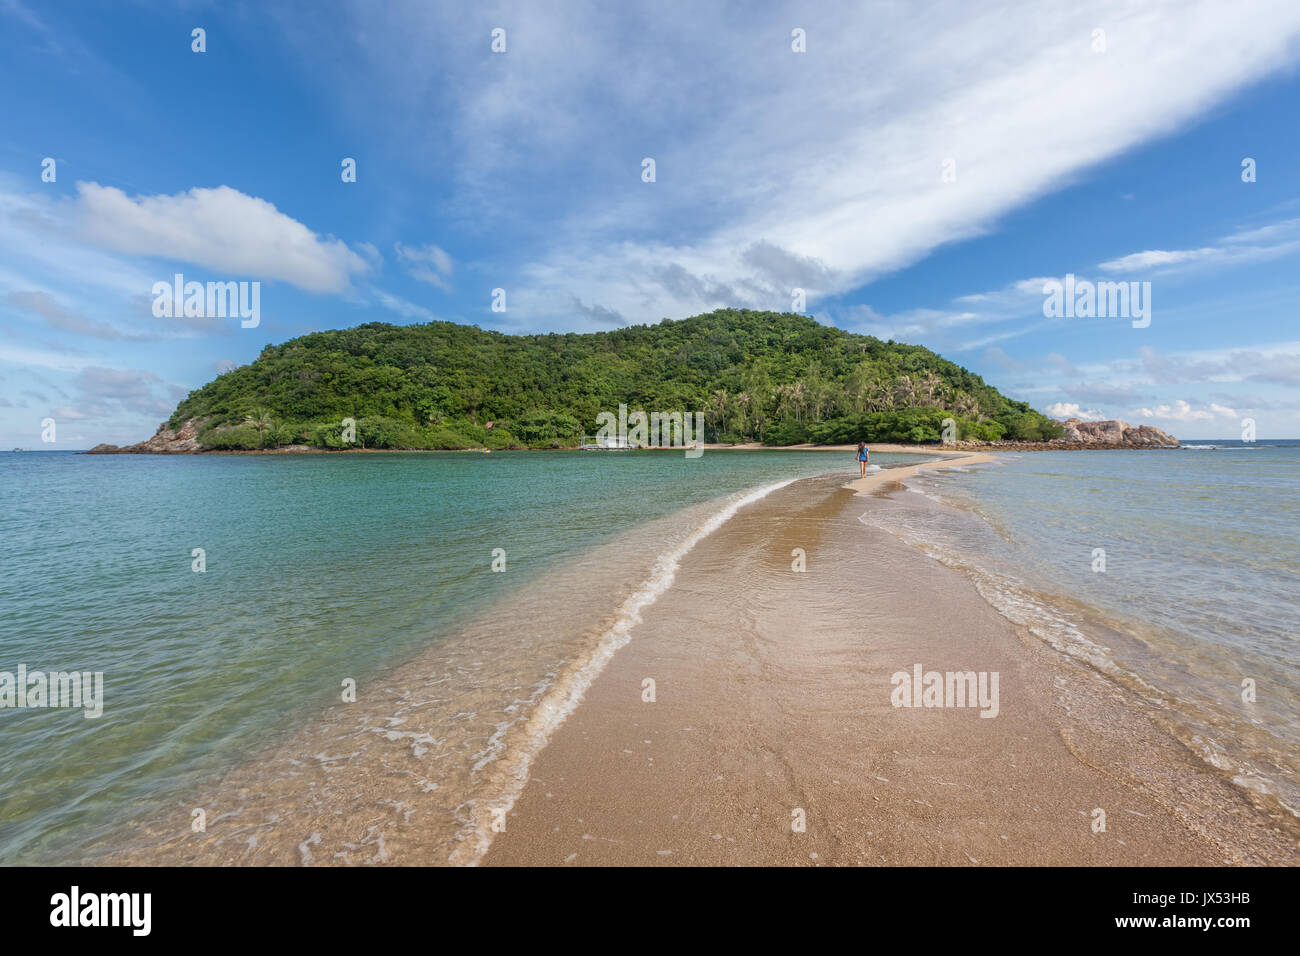 Lone young woman crossing tidal sandbar connecting Ko Ma island to Mae Haad beach, Koh Phangan island, Thailand - Stock Image